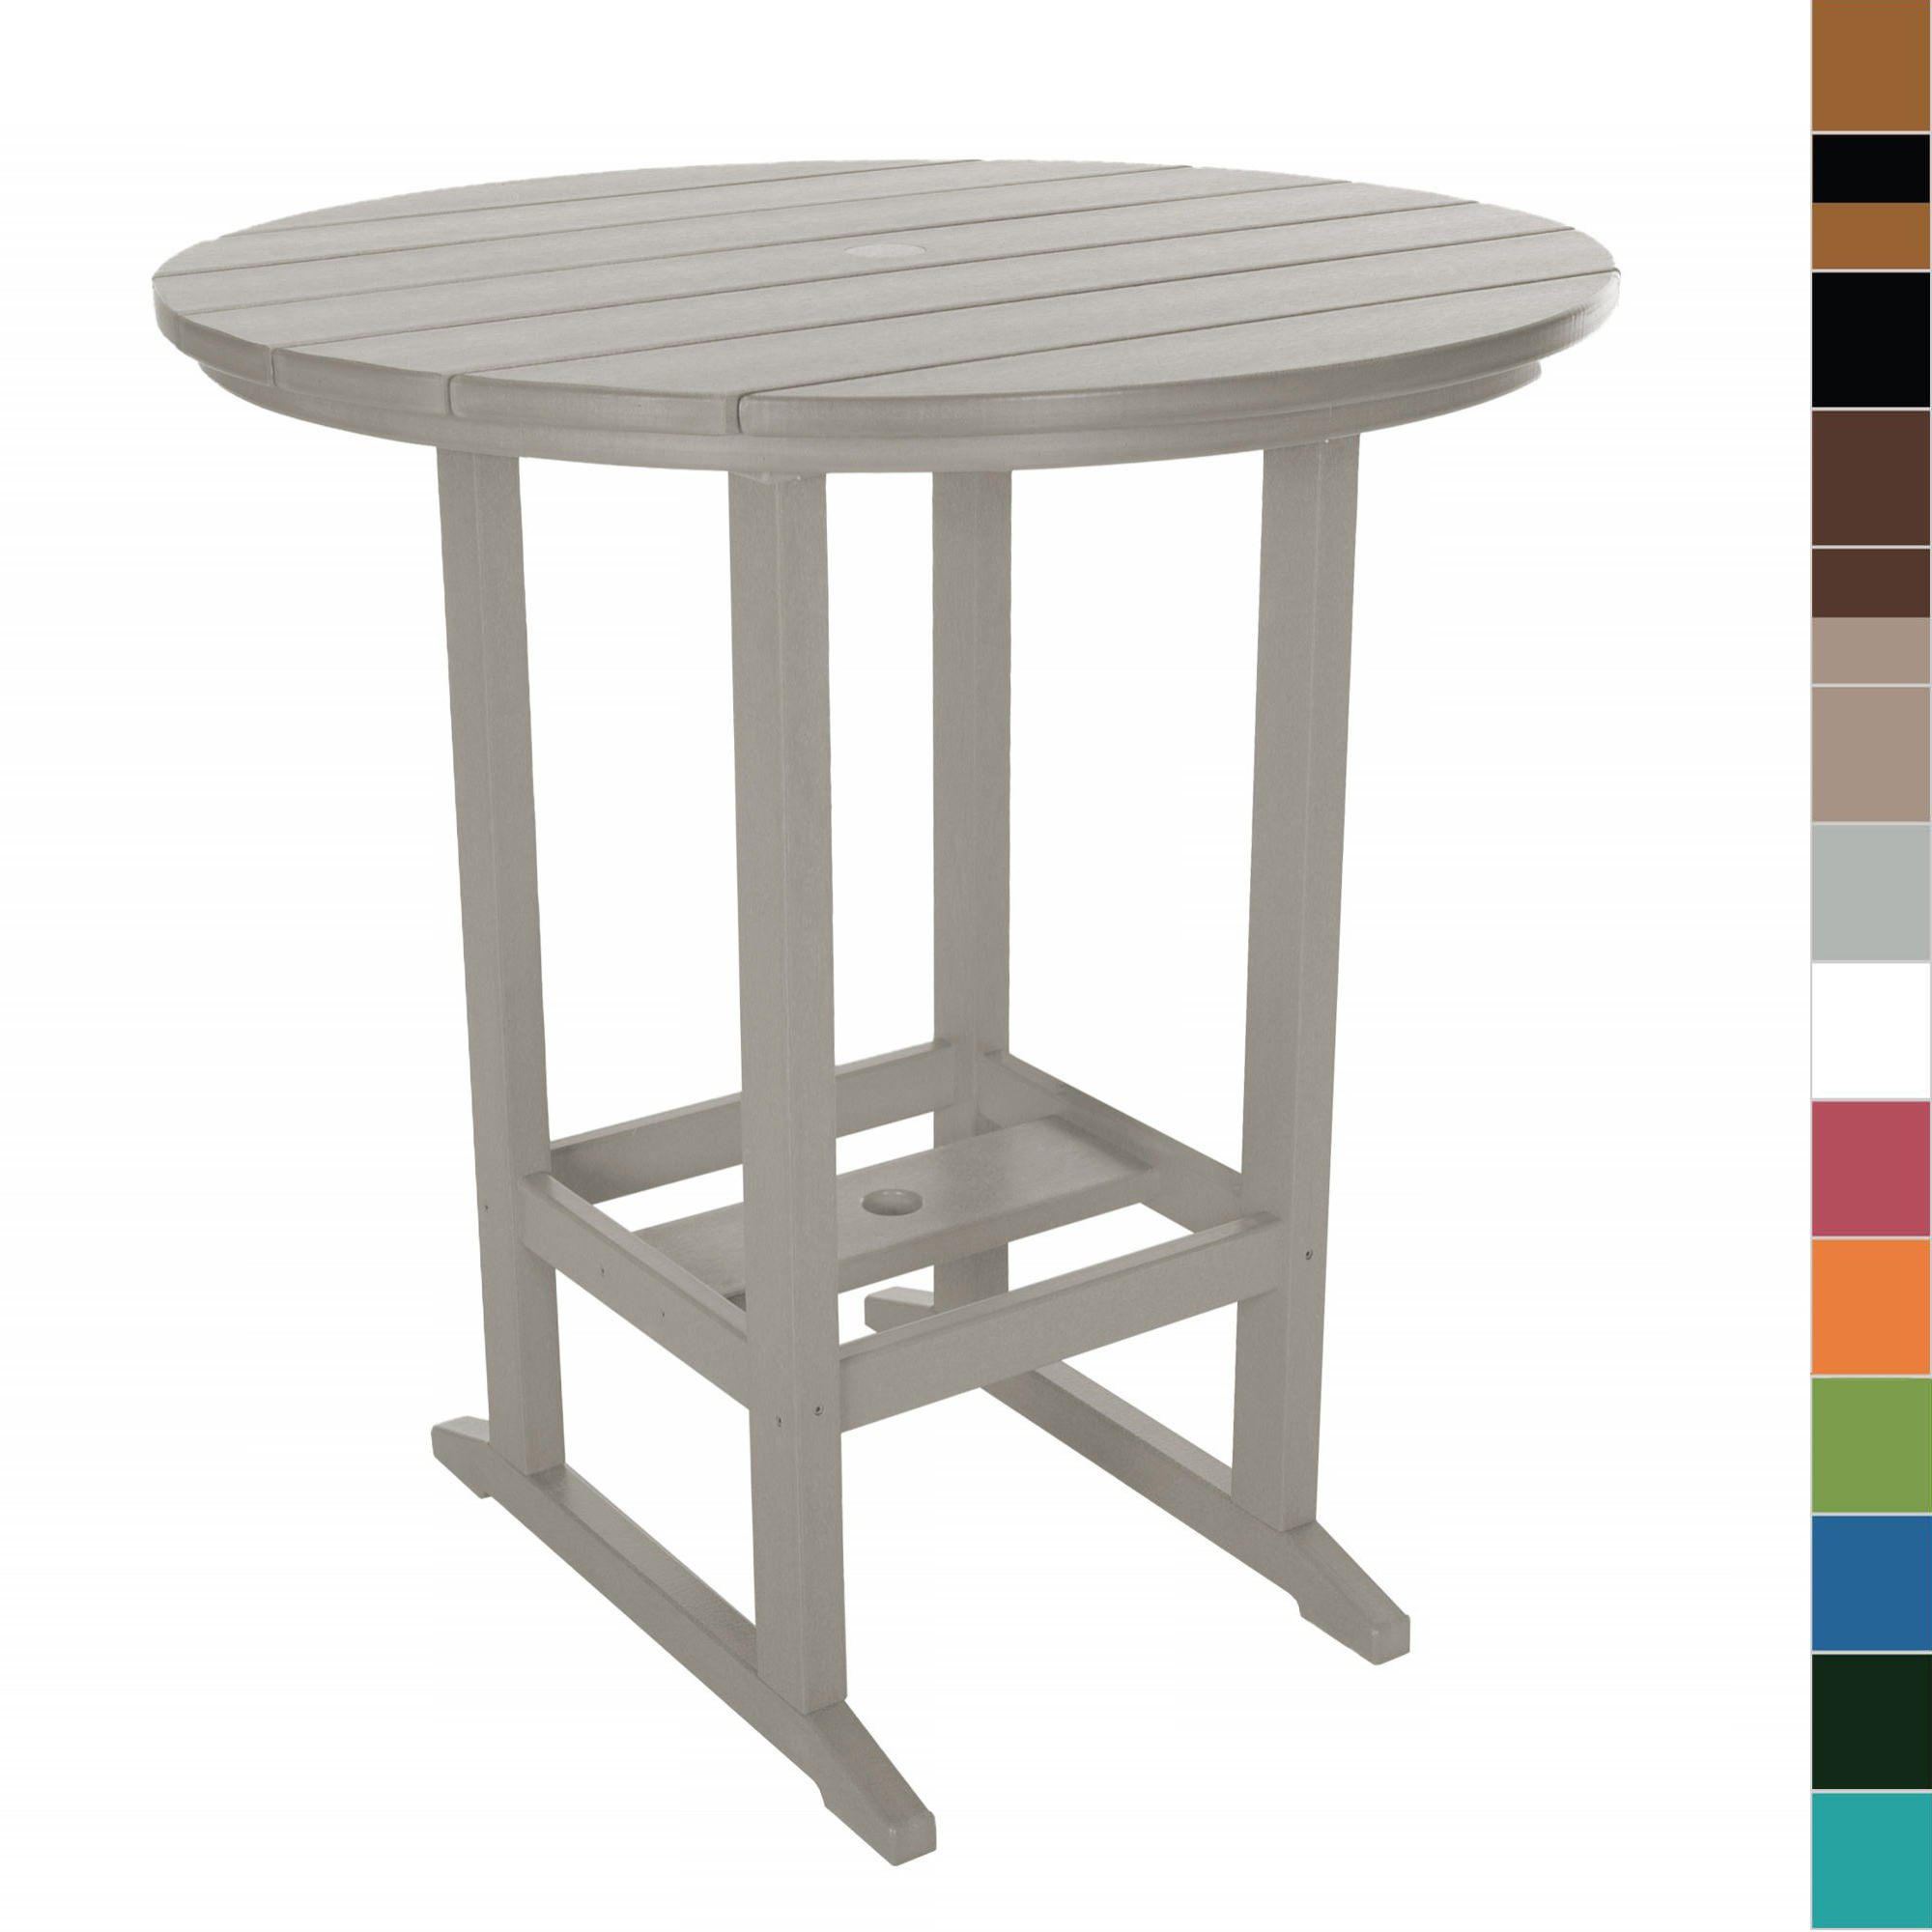 decor set your cheap table height chairs stools folding canada throughout for nice tire bar and stool canadian residence kitchen